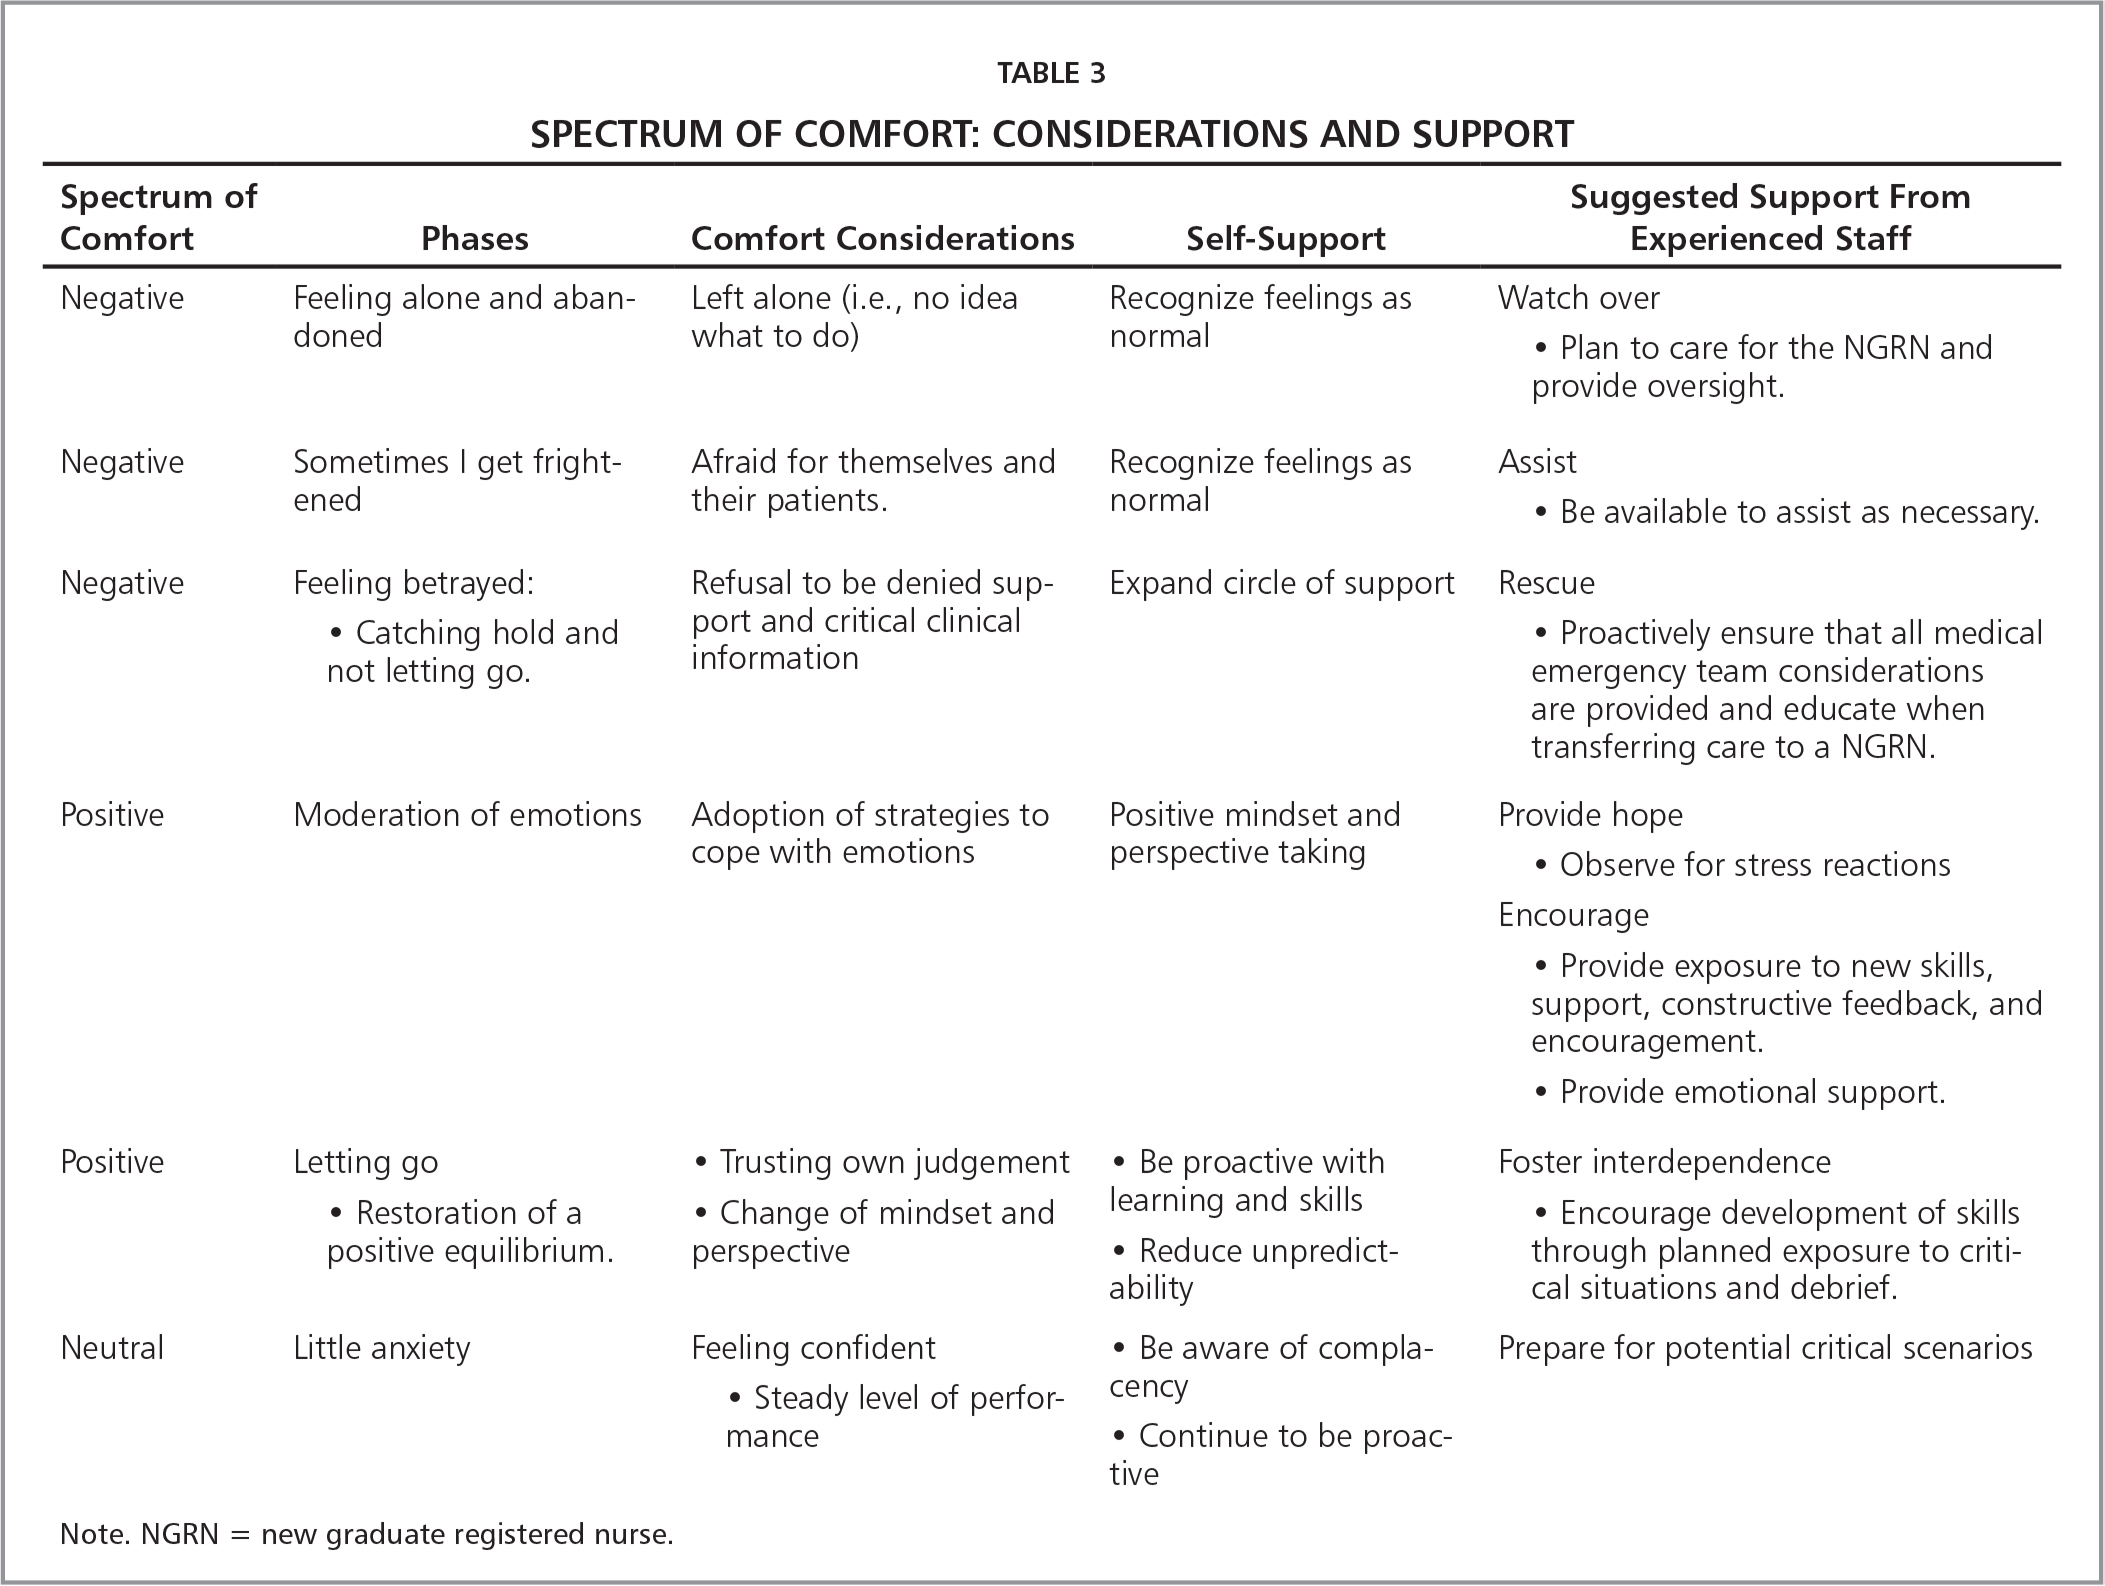 Spectrum of Comfort: Considerations and Support